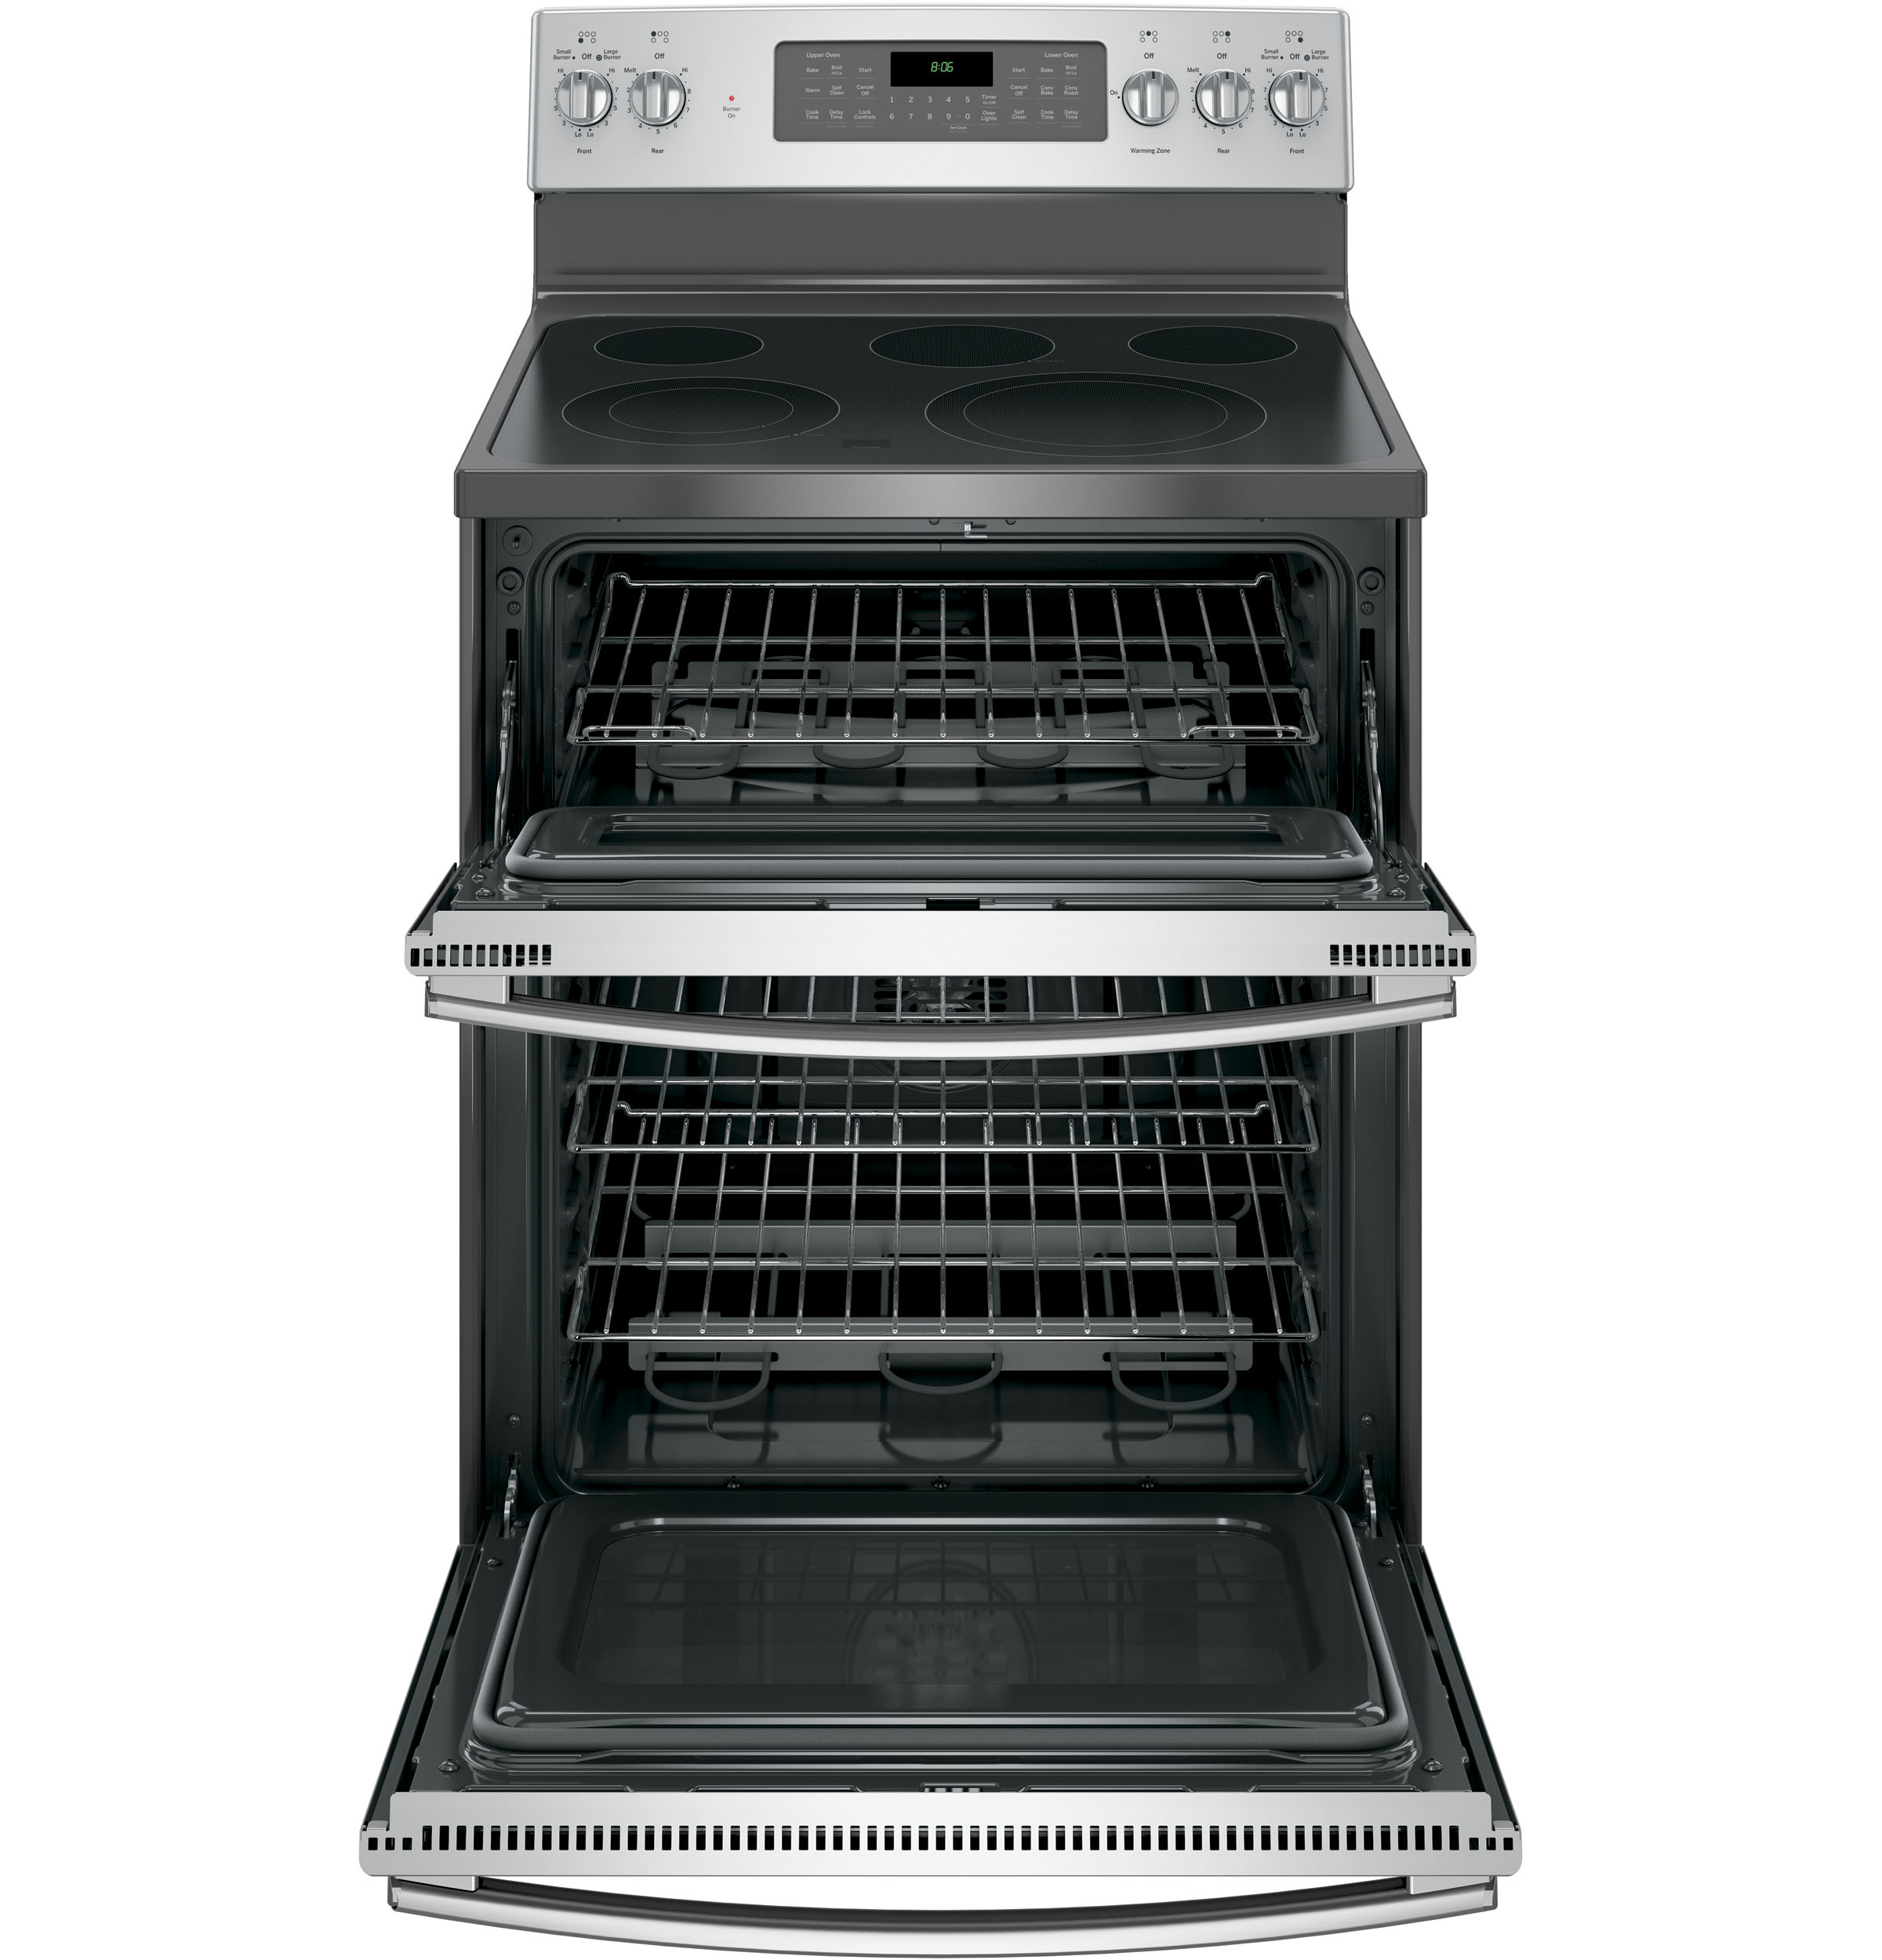 GE Appliances JB860SJSS 6.6 cu. ft. Freestanding Electric Double Oven Convection Range - Stainless Steel